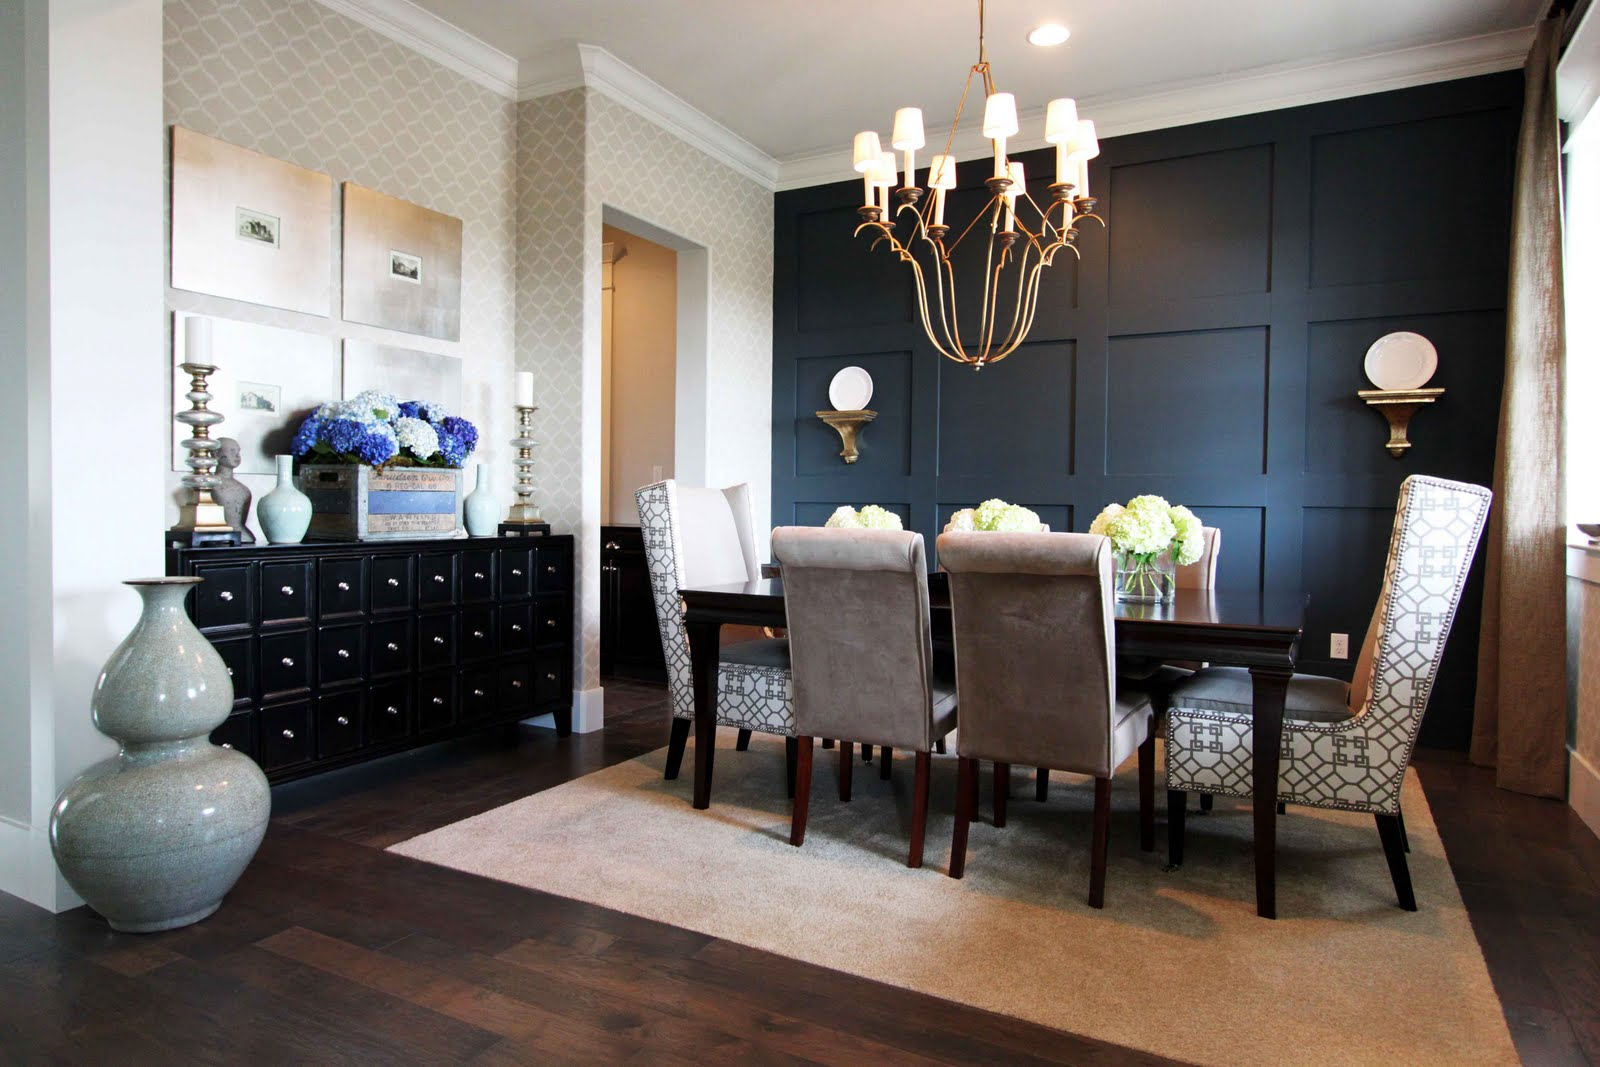 Stiles fischer interior design hgtv showhouse showdown for Black wall room ideas